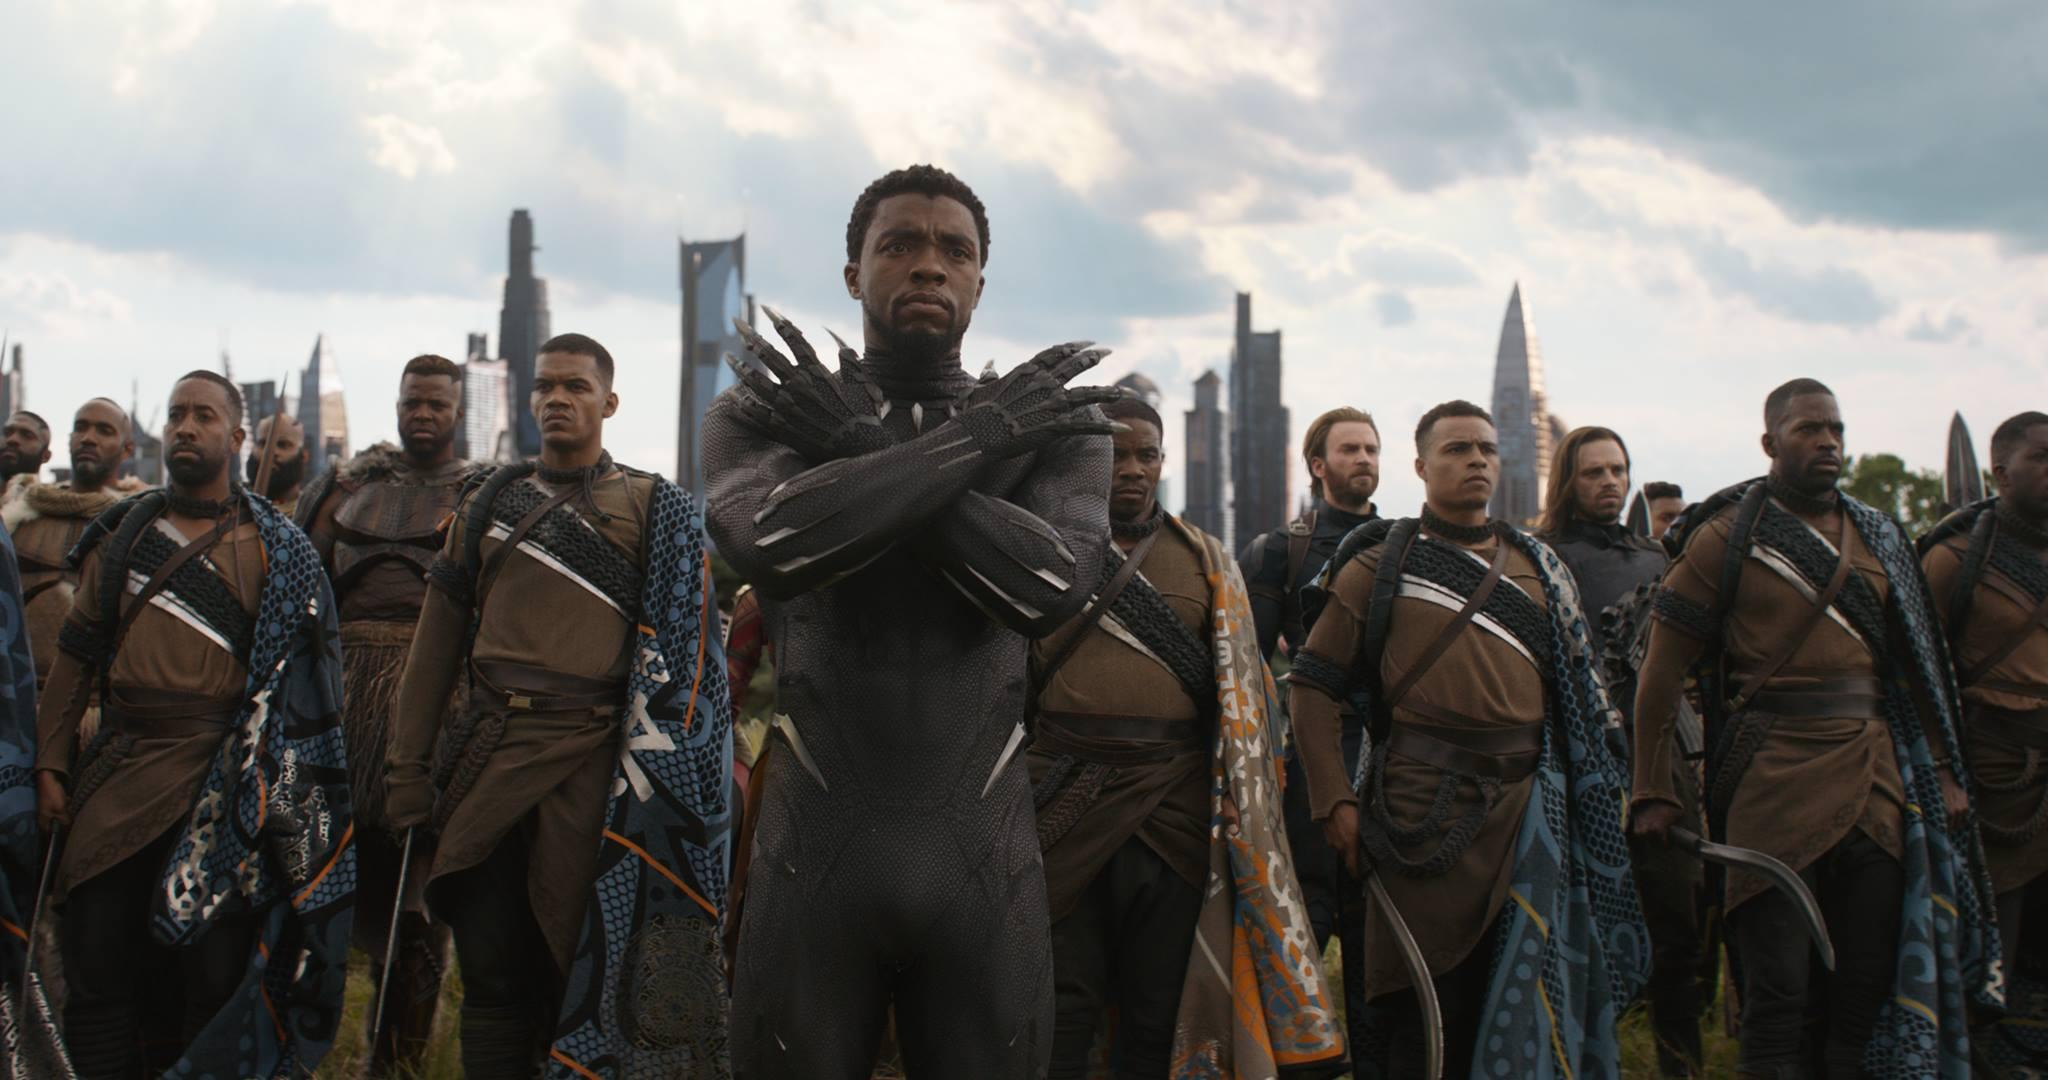 A 'Black Panther' sequel has been green-lit - here's what to expect